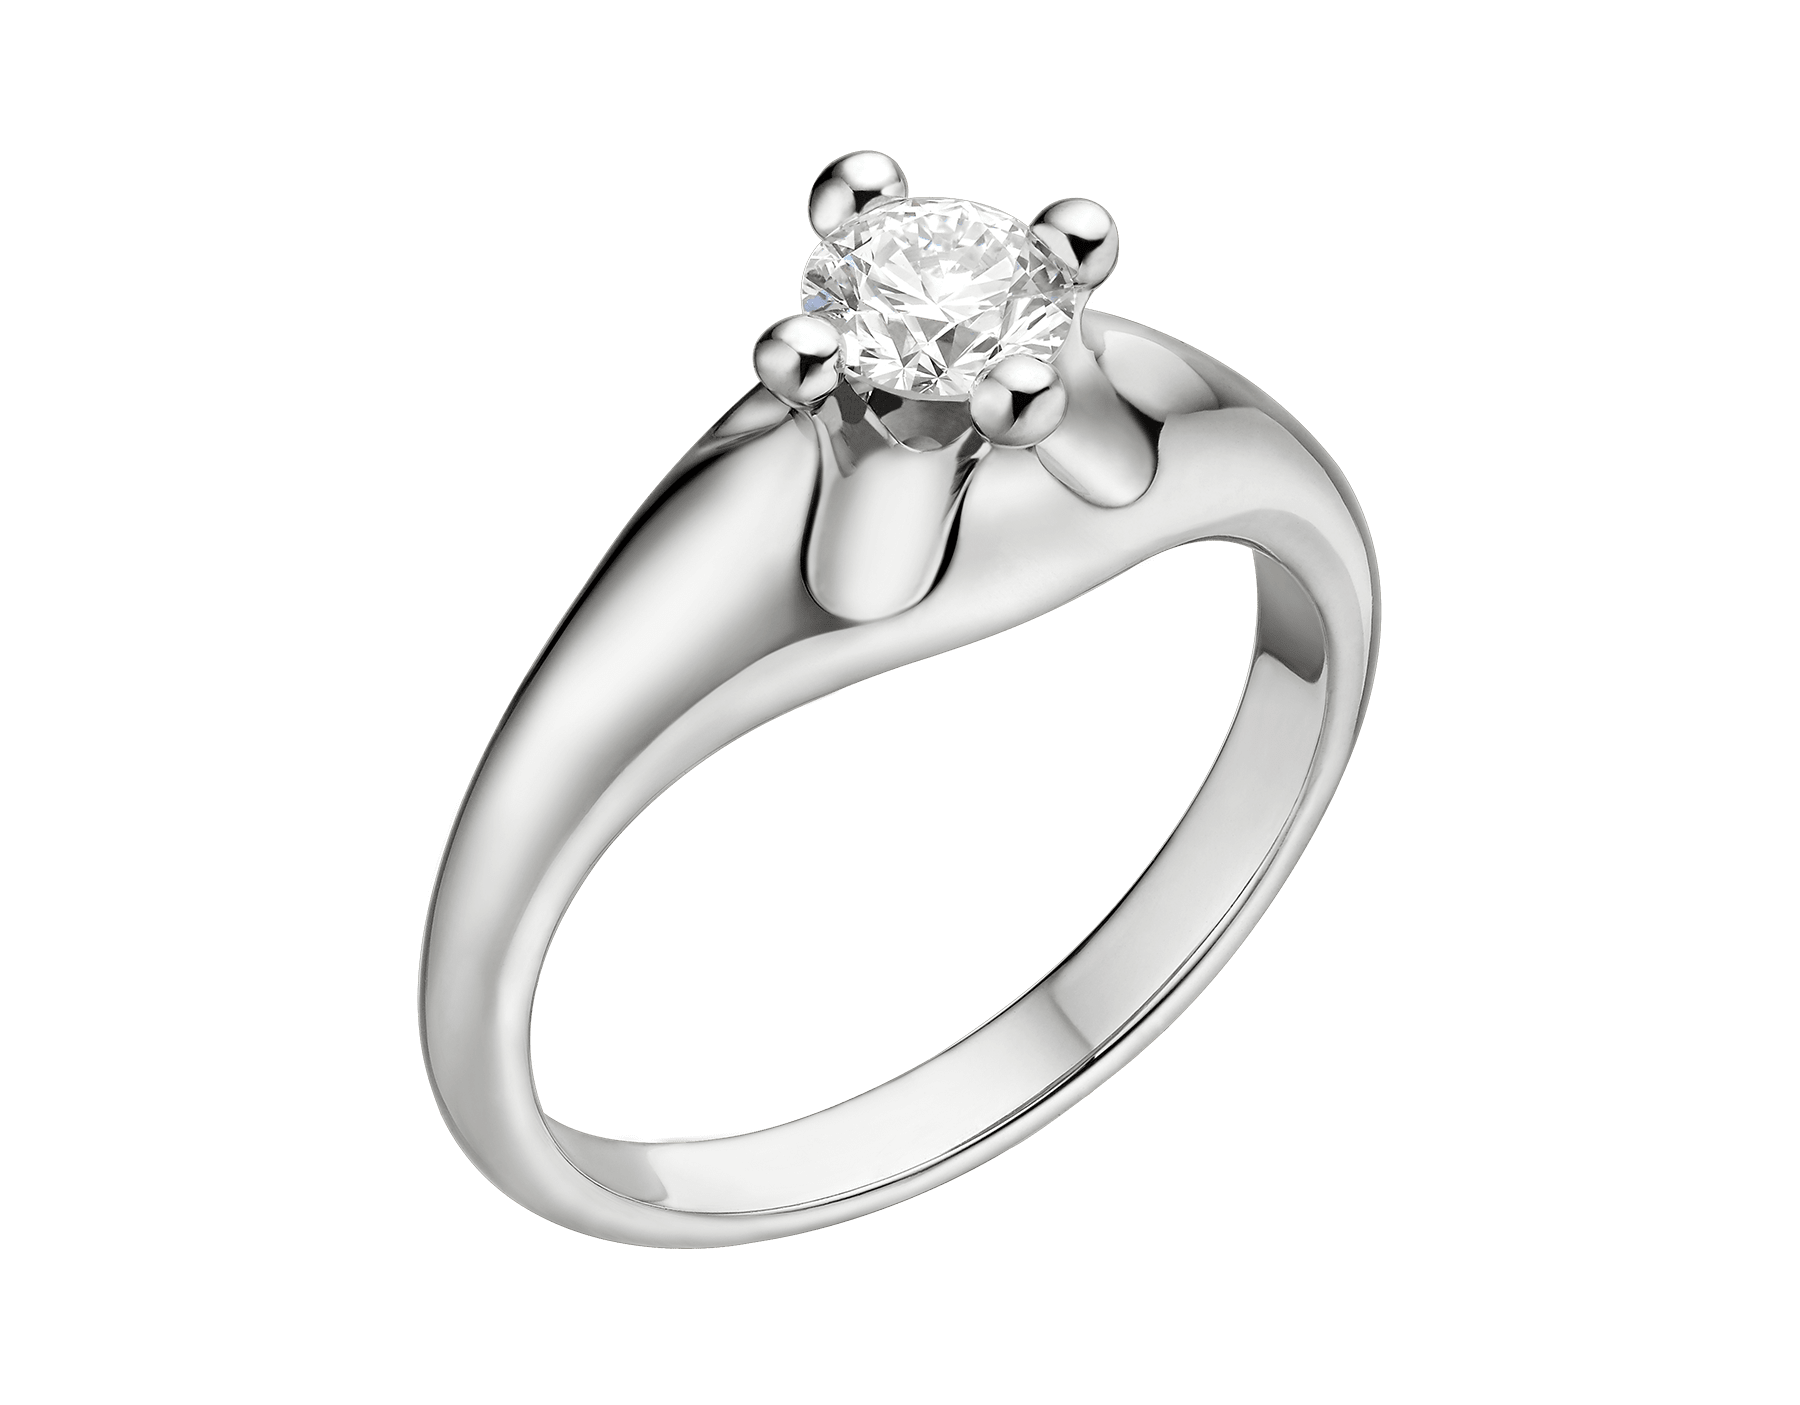 Corona solitaire ring in platinum with round brilliant cut diamond. Available from 0.30 ct. Inspired by the crown and the flower, two enduring symbols of glory and celebration since ancient times. 327918 image 1